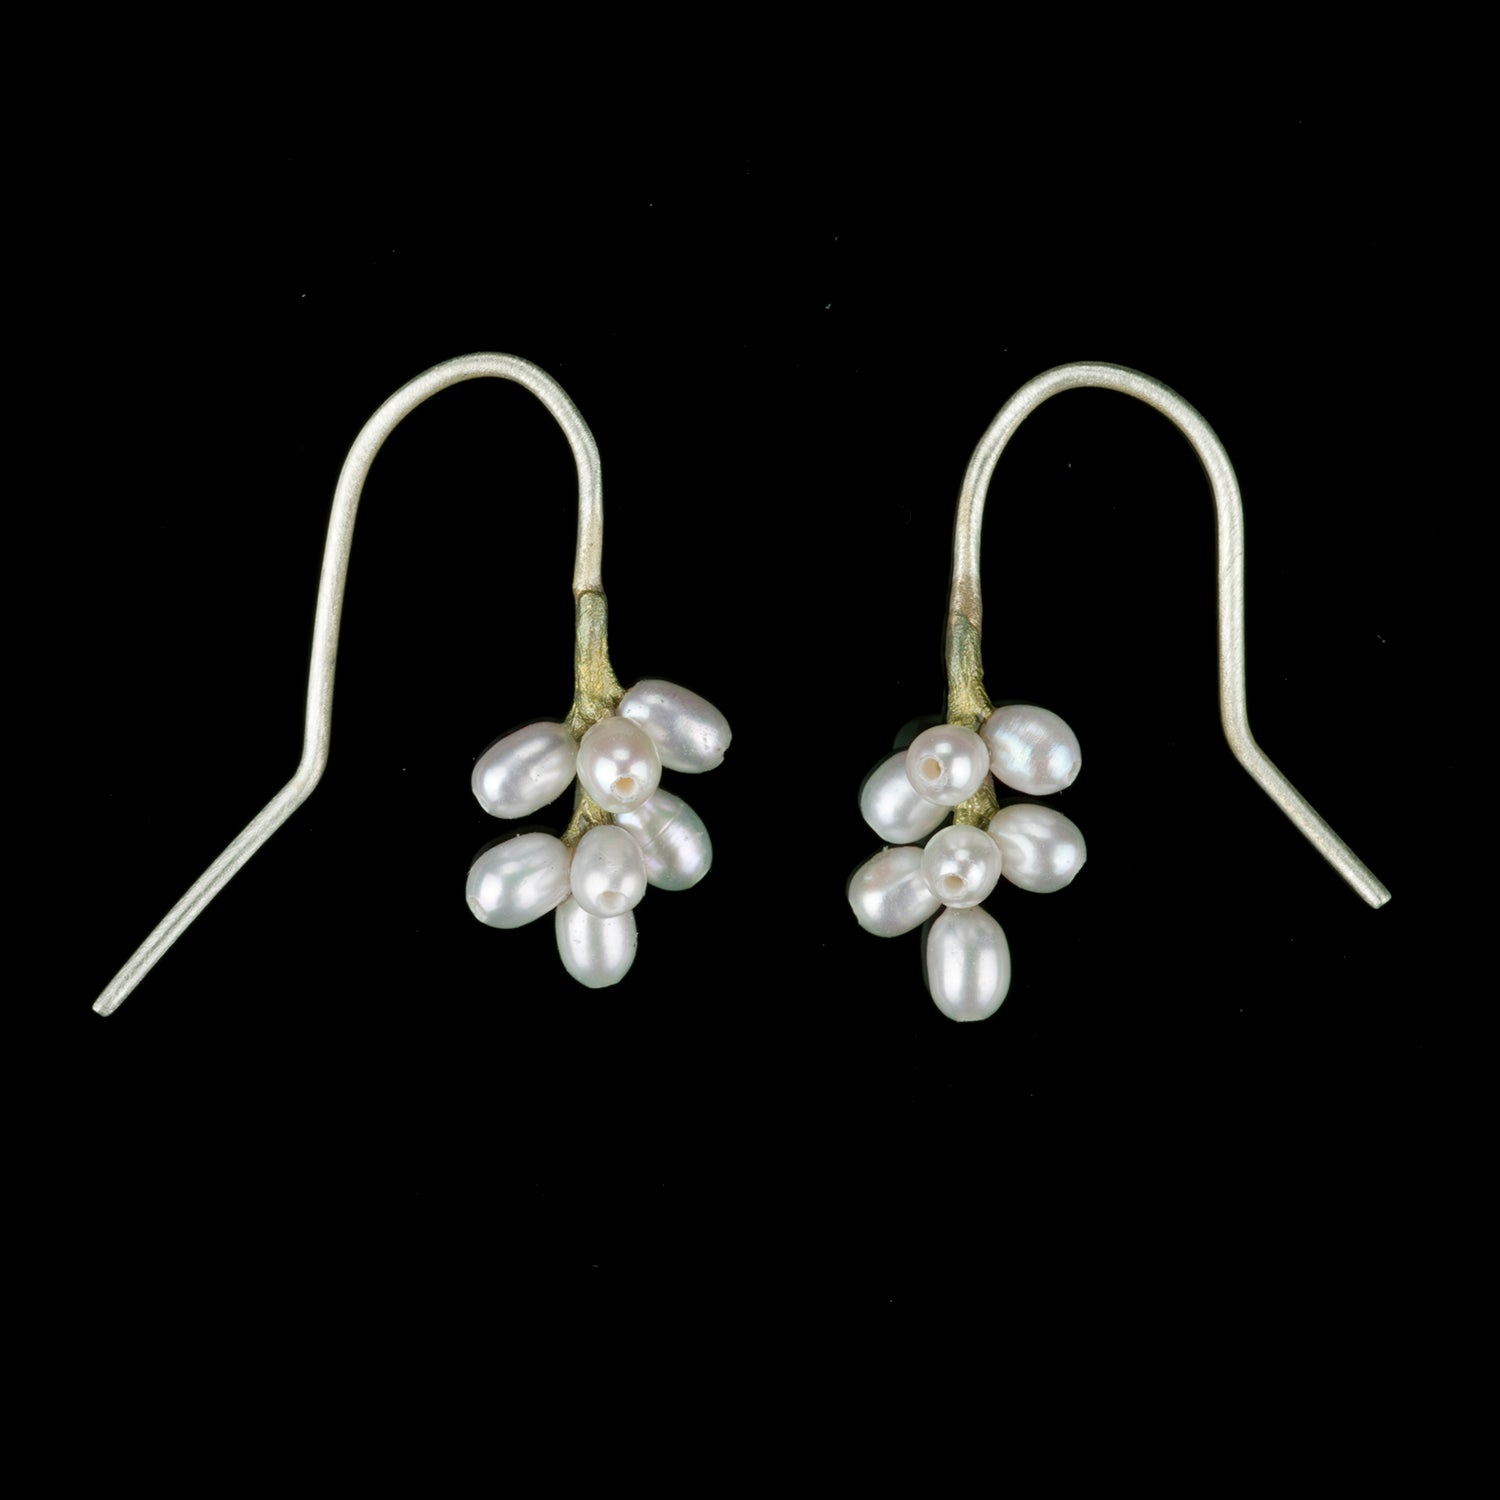 Flowering Myrtle Earrings - Cluster